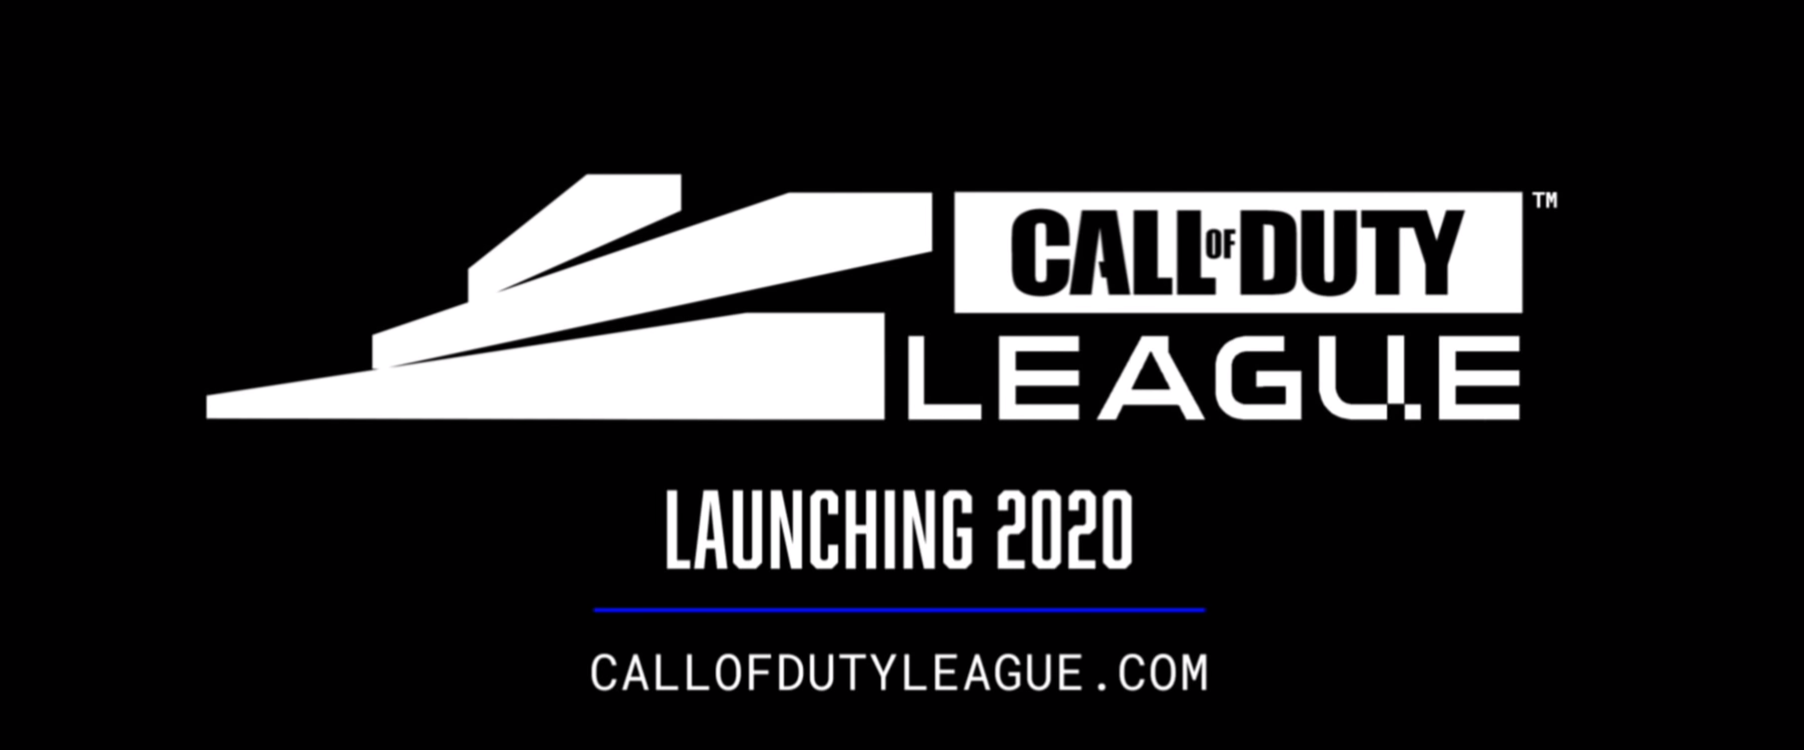 How To Get Into The Call Of Duty League